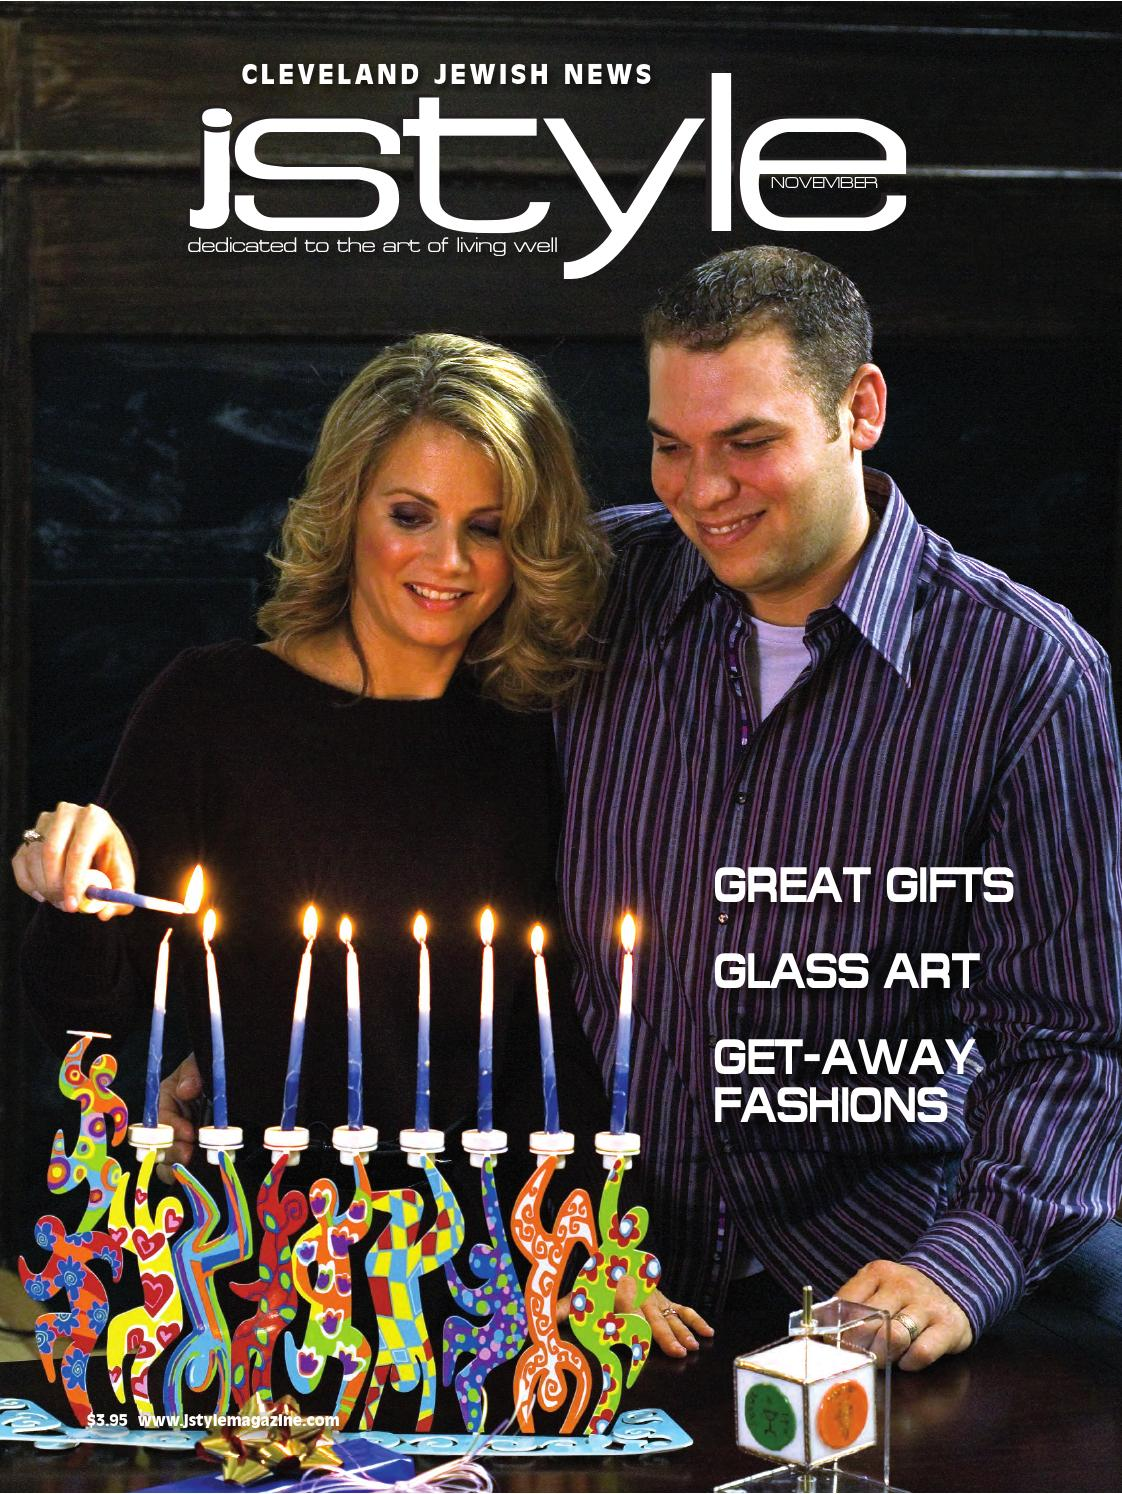 Jstyle November 2007 By Cleveland Jewish Publication Company Issuu Thread Realistic Electric Flickering Pillar Candles